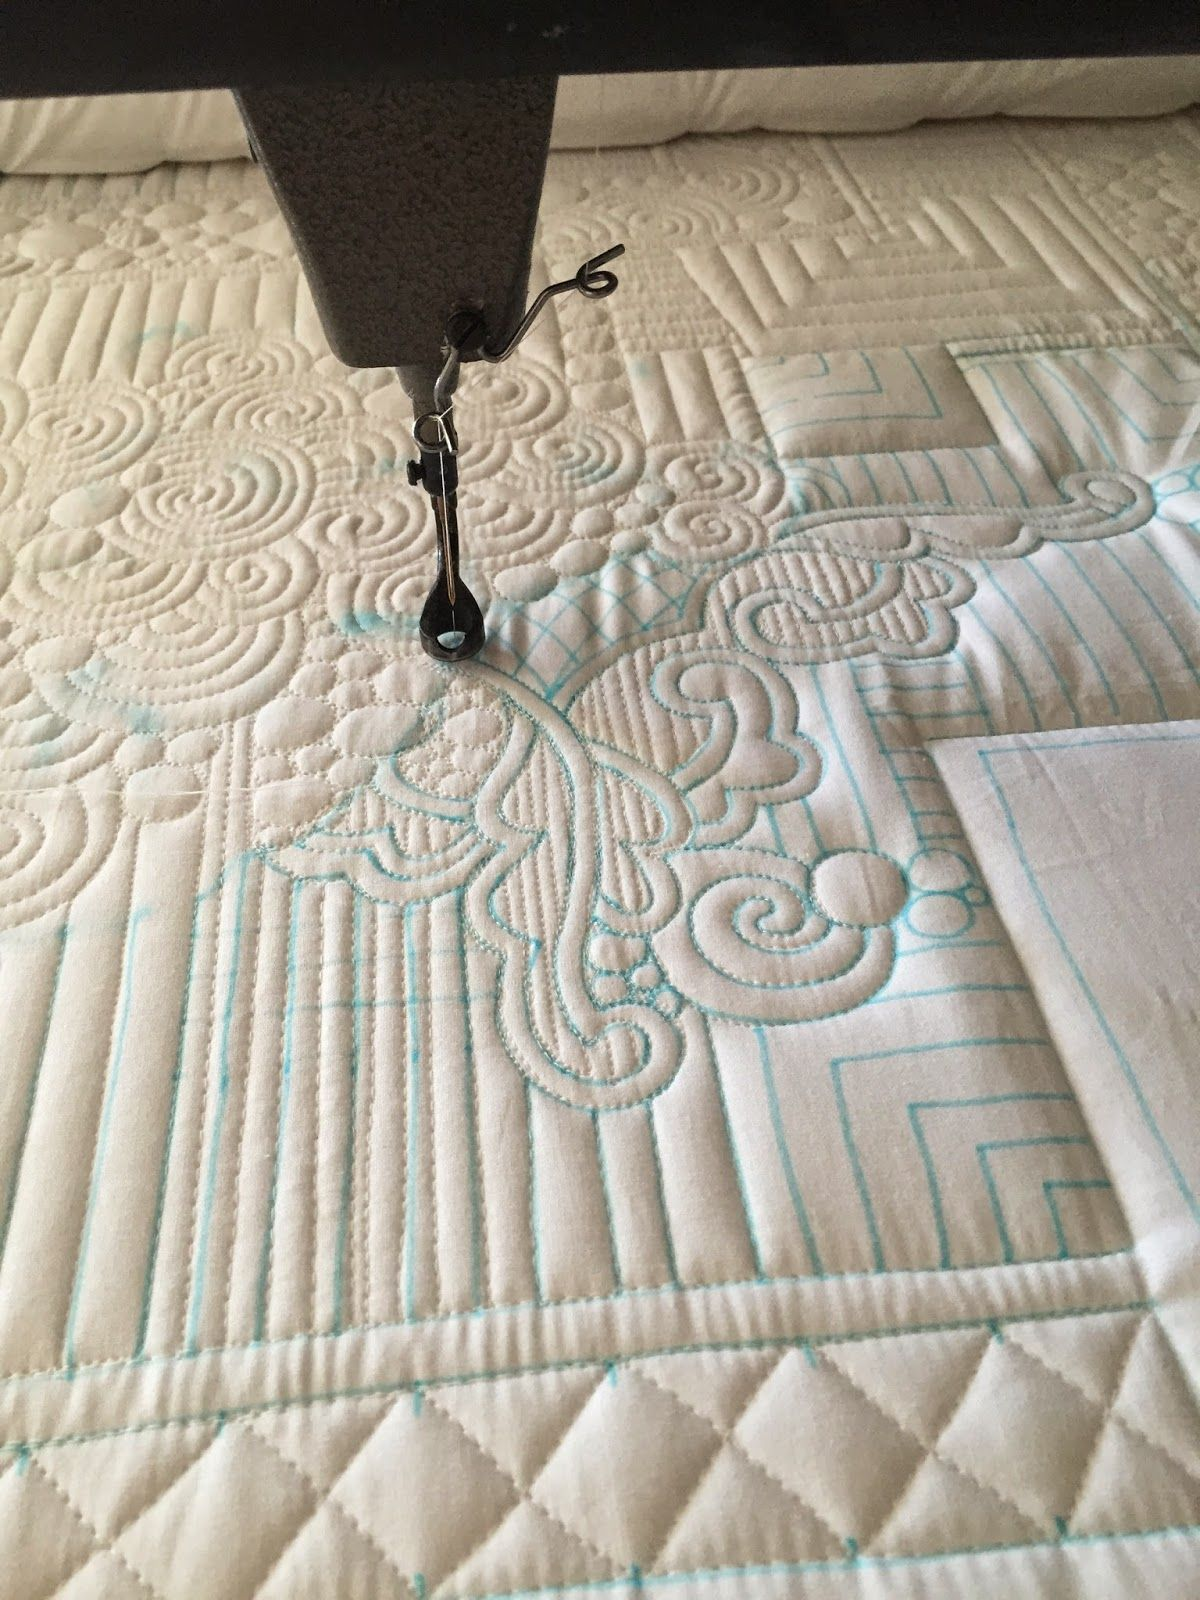 Krista Withers Quilting: Class to Quilt-Compositional ...Quilt Drawing